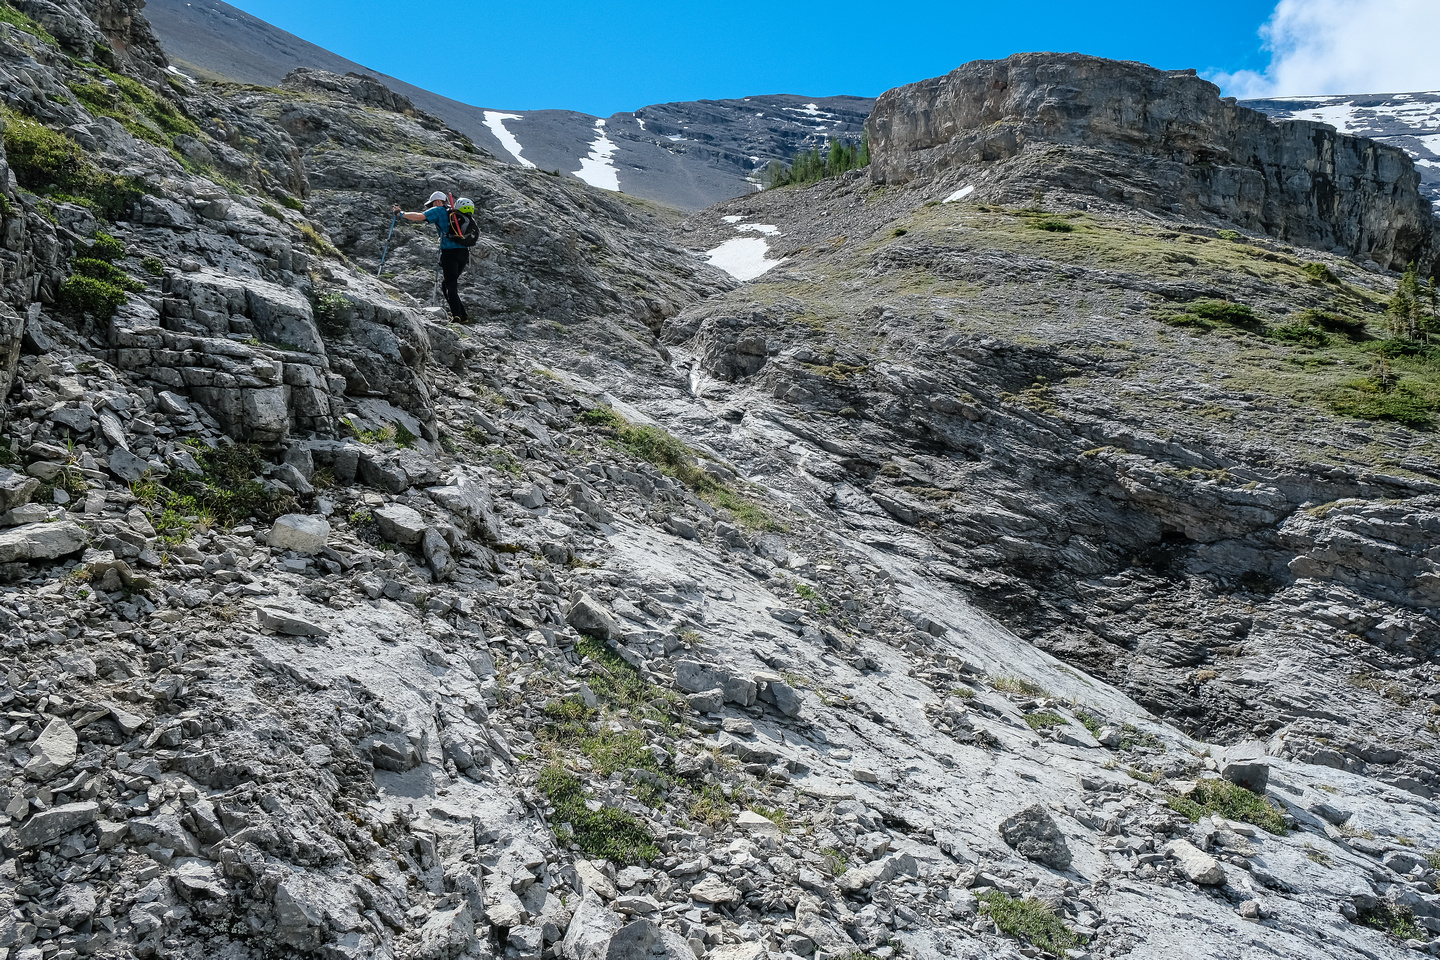 Hiking up climber's left of the NW gully.